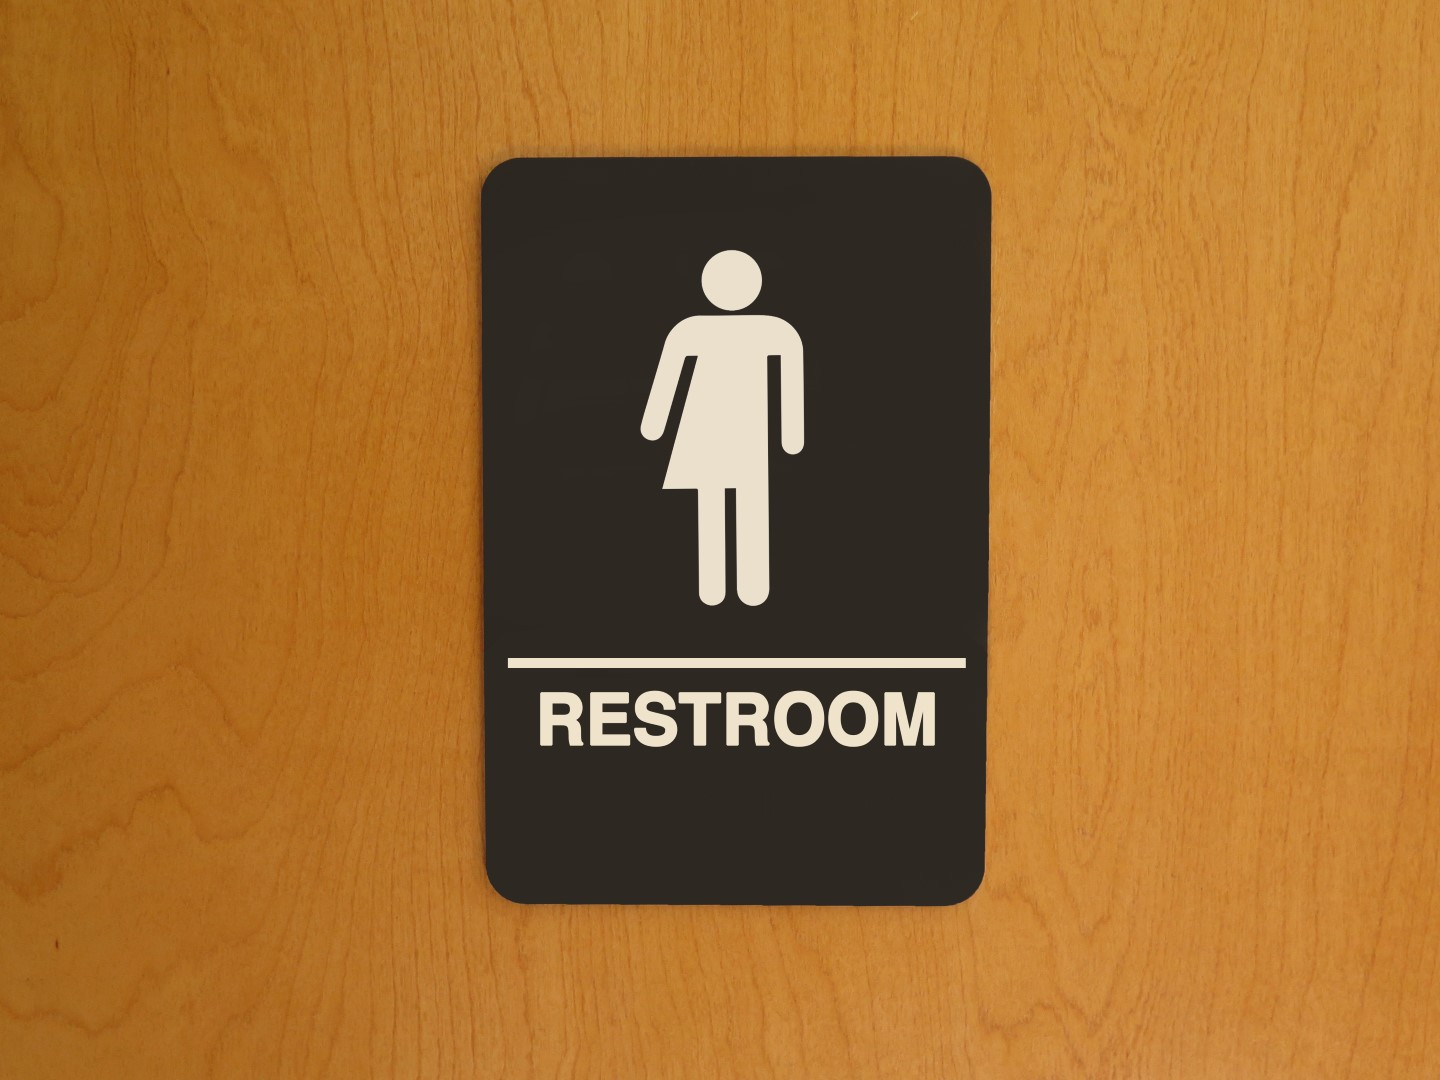 Rick Scott Said State 39 Clearly Reviewing 39 Transgender